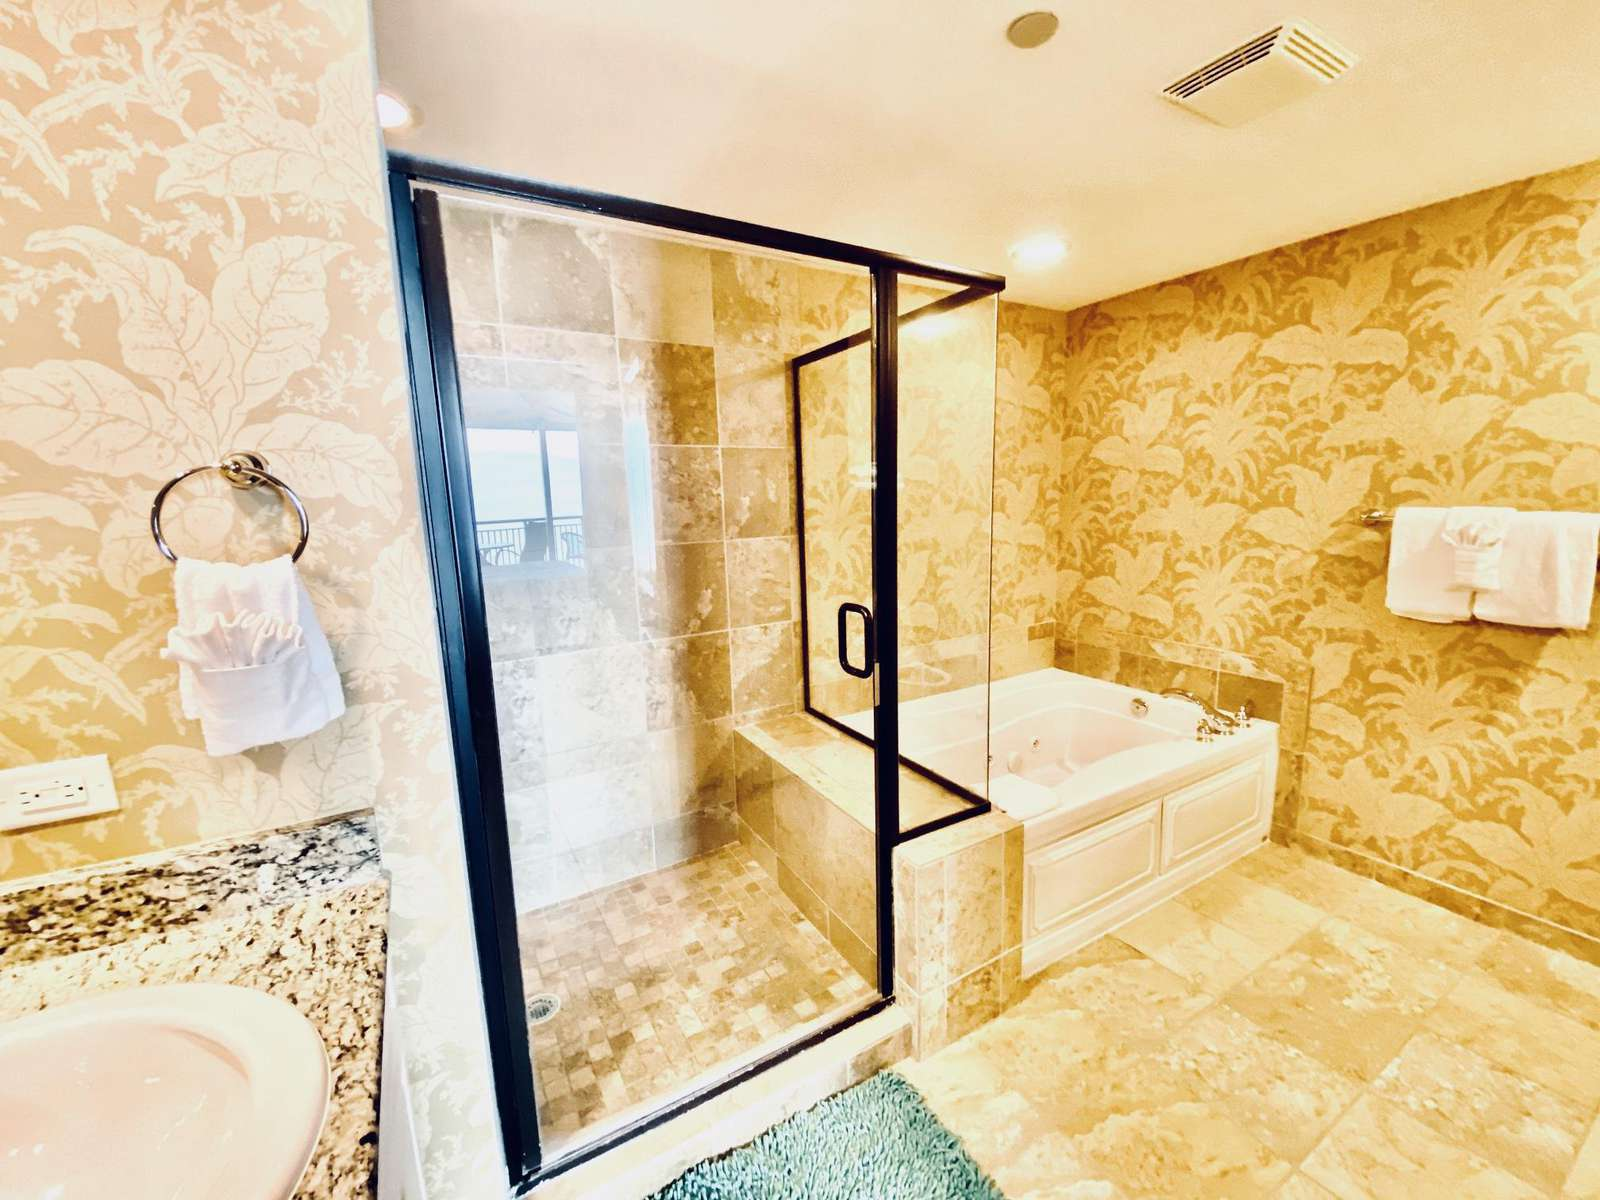 Master bath with stall shower and jetted tub